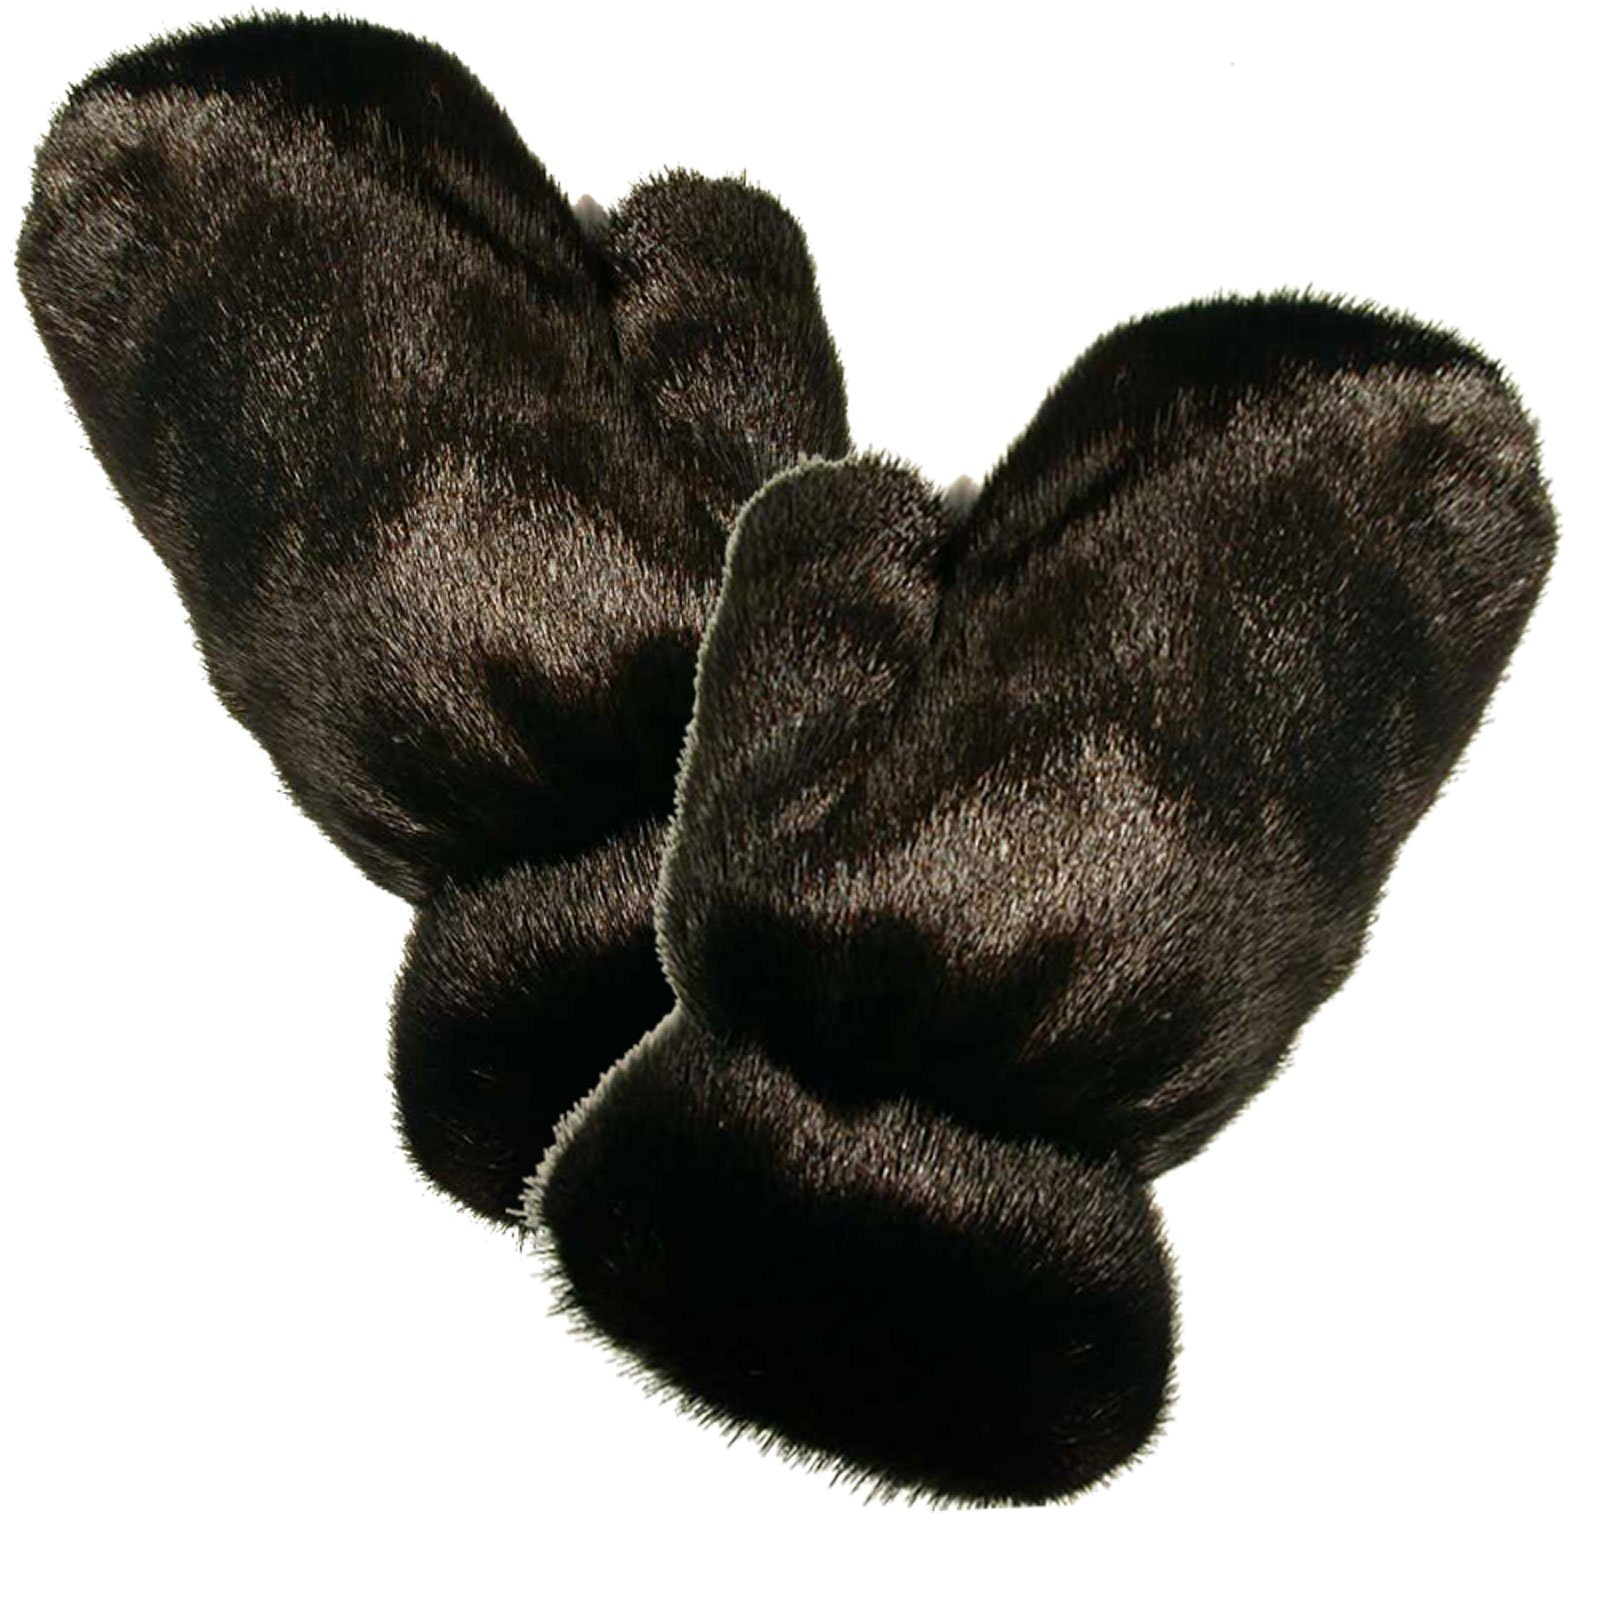 MinkgLove Full Fur Massage Glove, Mink, Covered Inside and Outside, Silky Smooth Yet Textured Feel, Black, Hand Tailored, Unisex, One Size - Four Sided All Fur